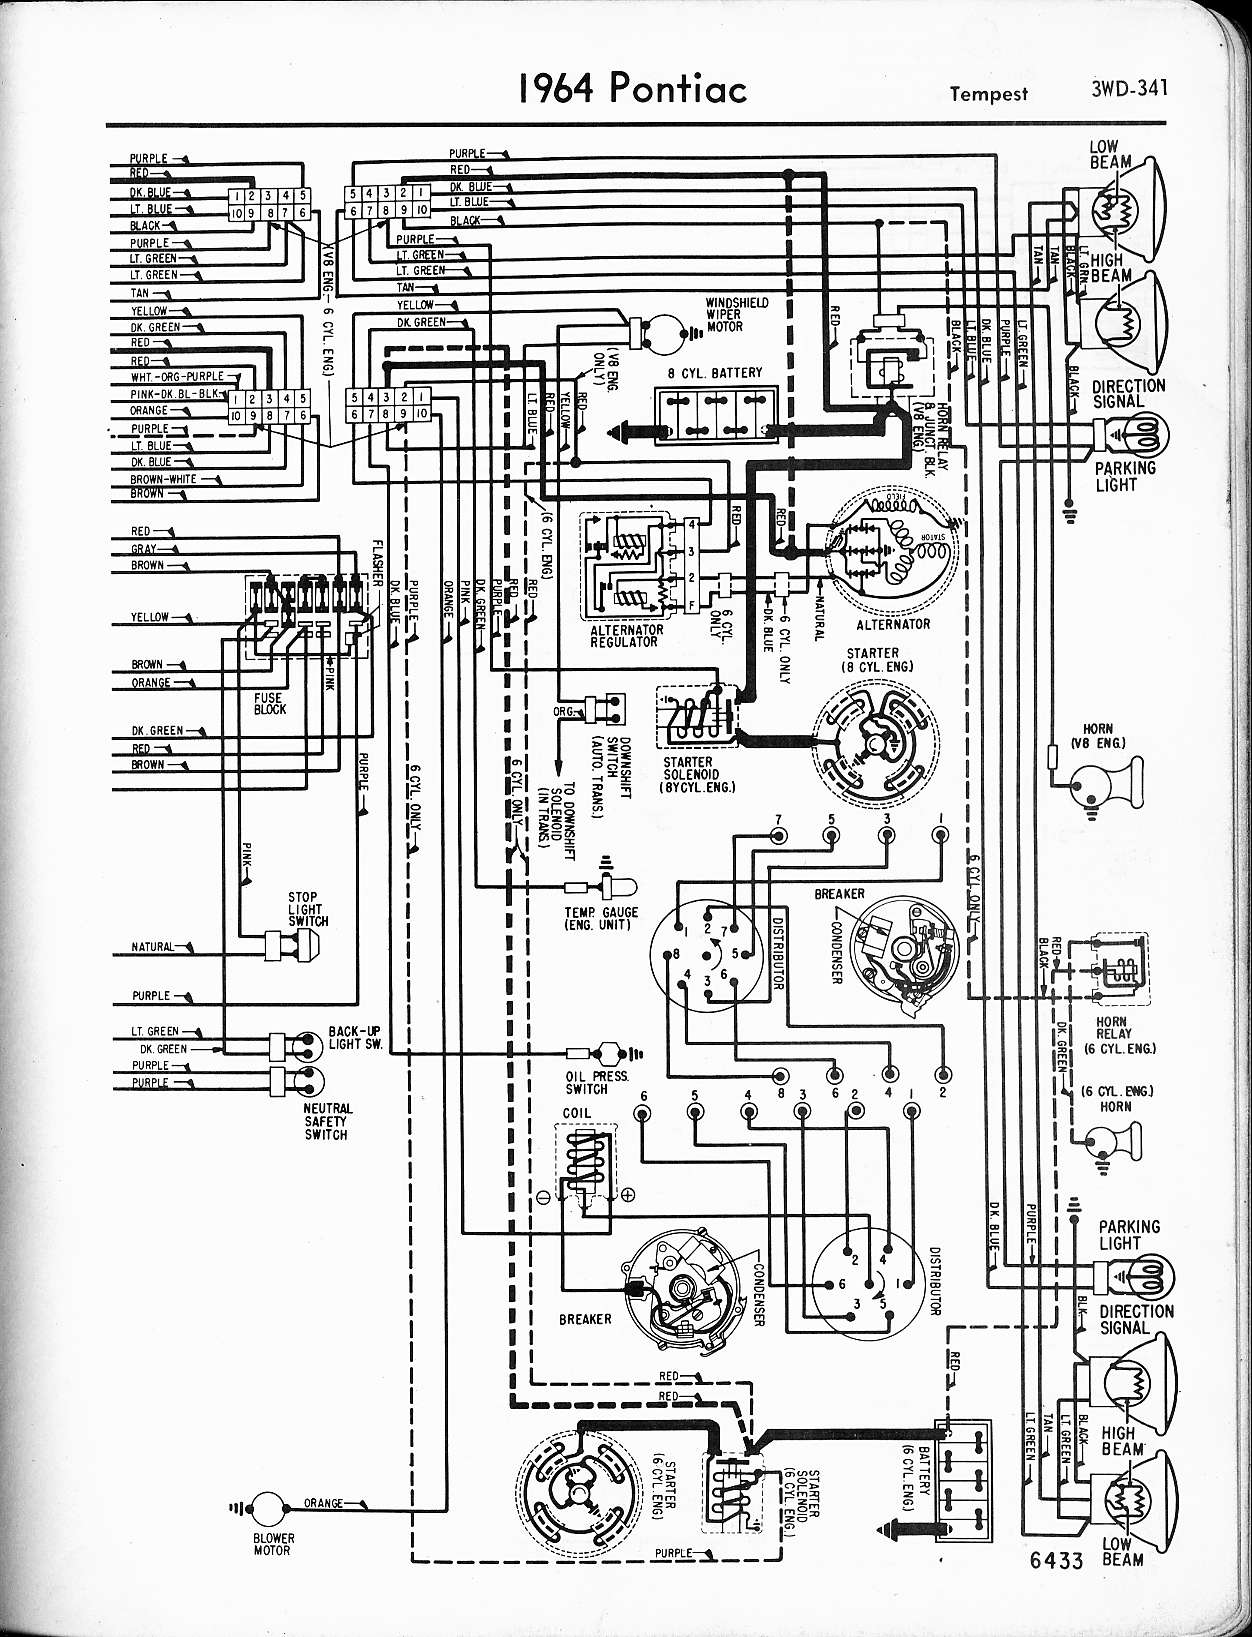 Wallace racing wiring diagrams rh wallaceracing 1965 pontiac gto wiring diagrams 2006 gto wiring harness